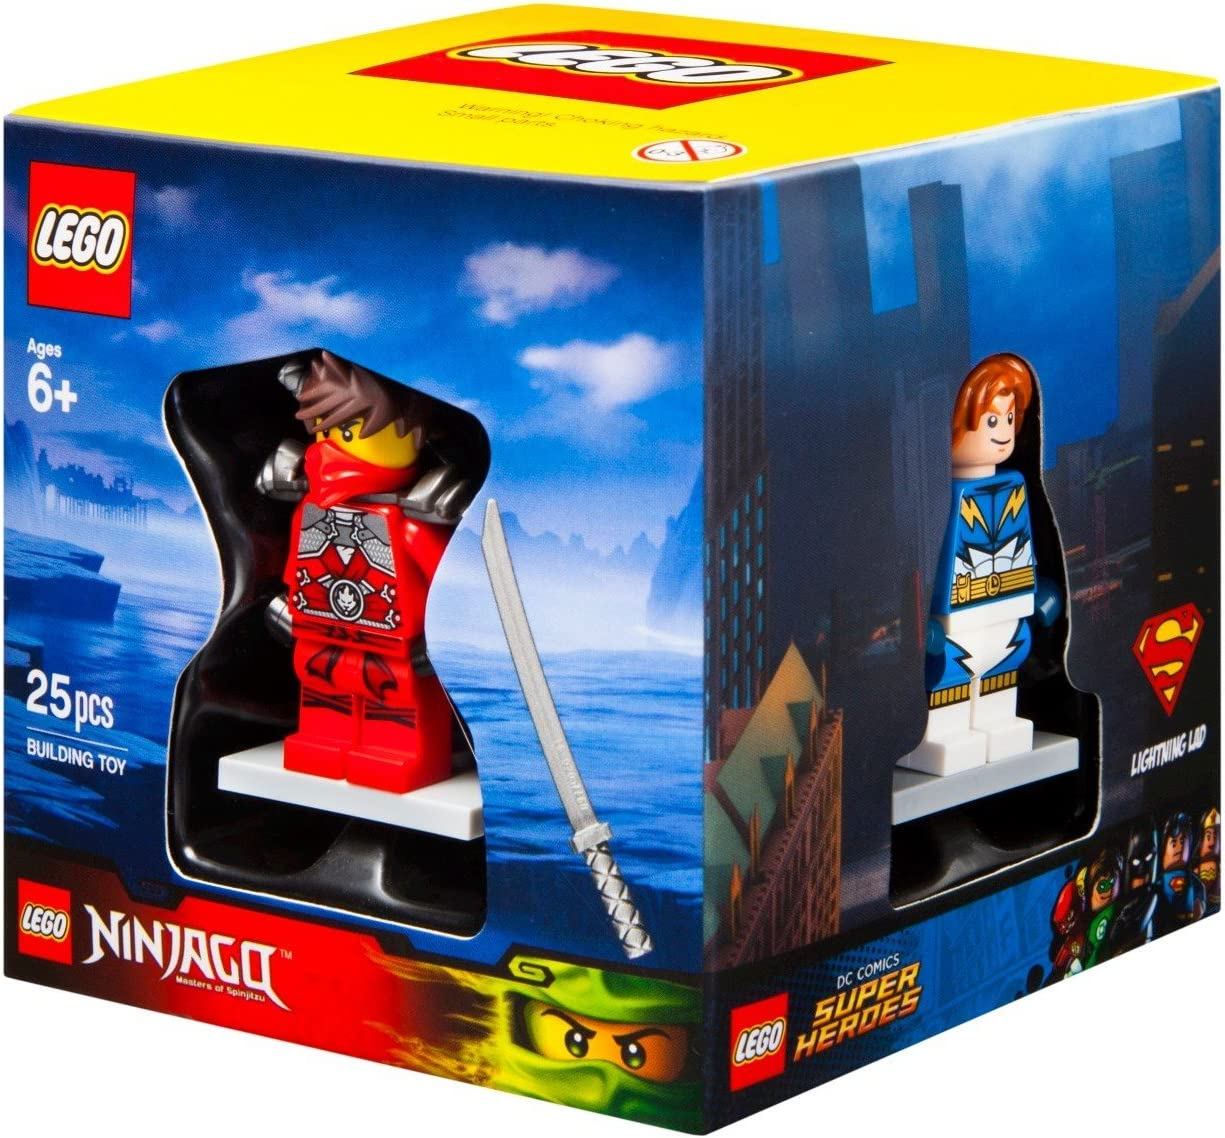 LEGO 4 Minifigures Boxed Giftset Cube 2015 Superheroes Chima Ninjago and City Themes